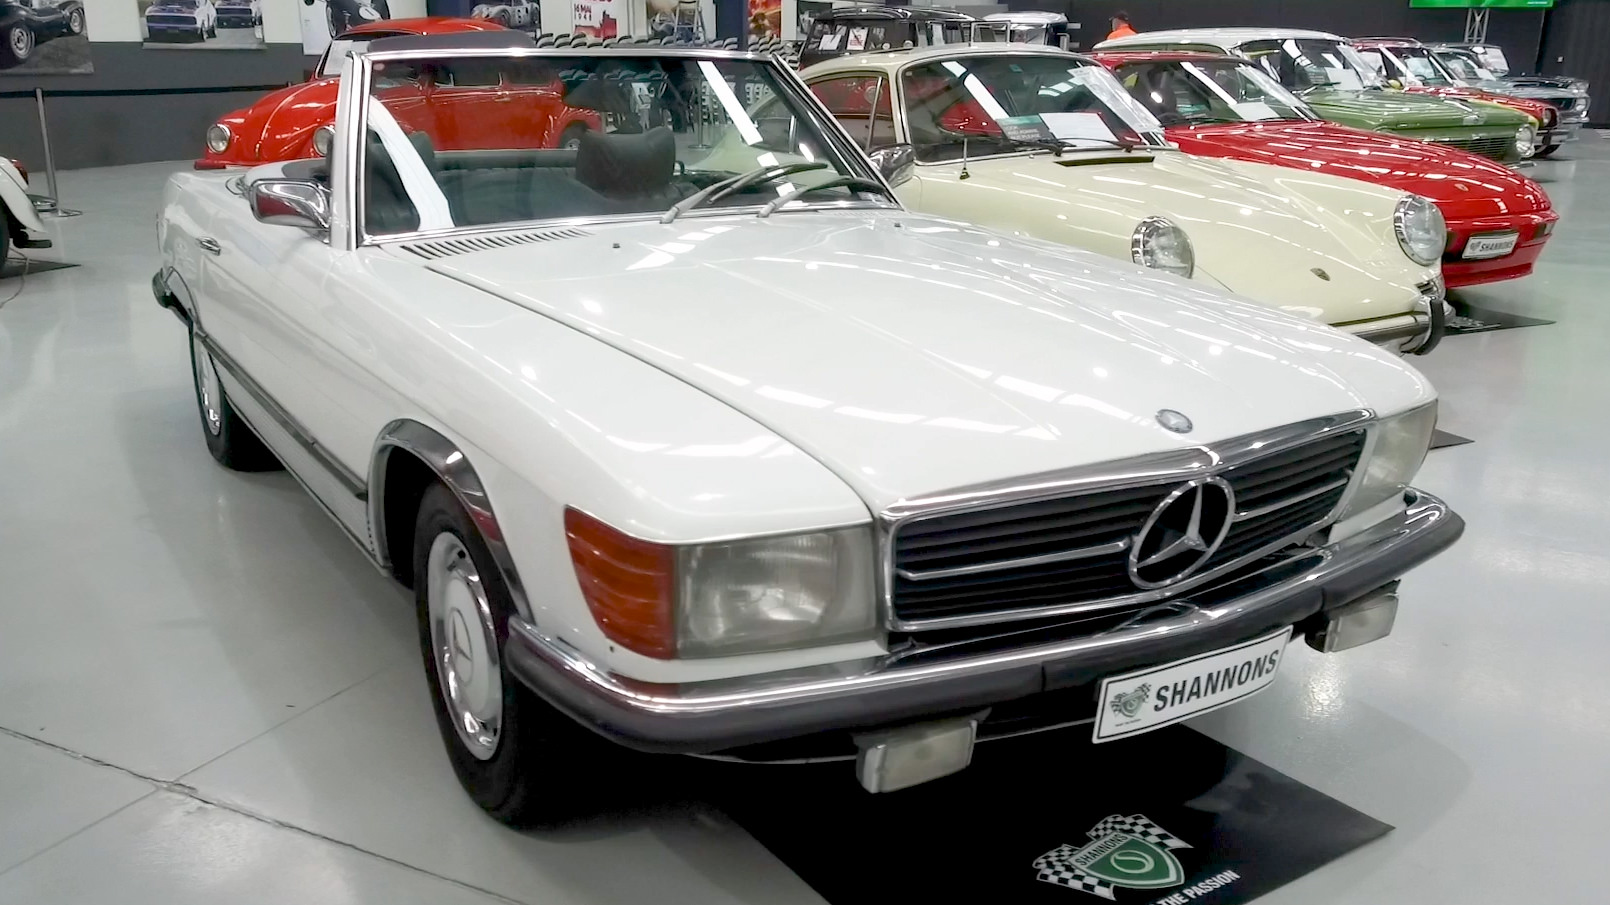 1974 Mercedes-Benz 450SL Convertible - 2021 Shannons Spring Timed Online Auction